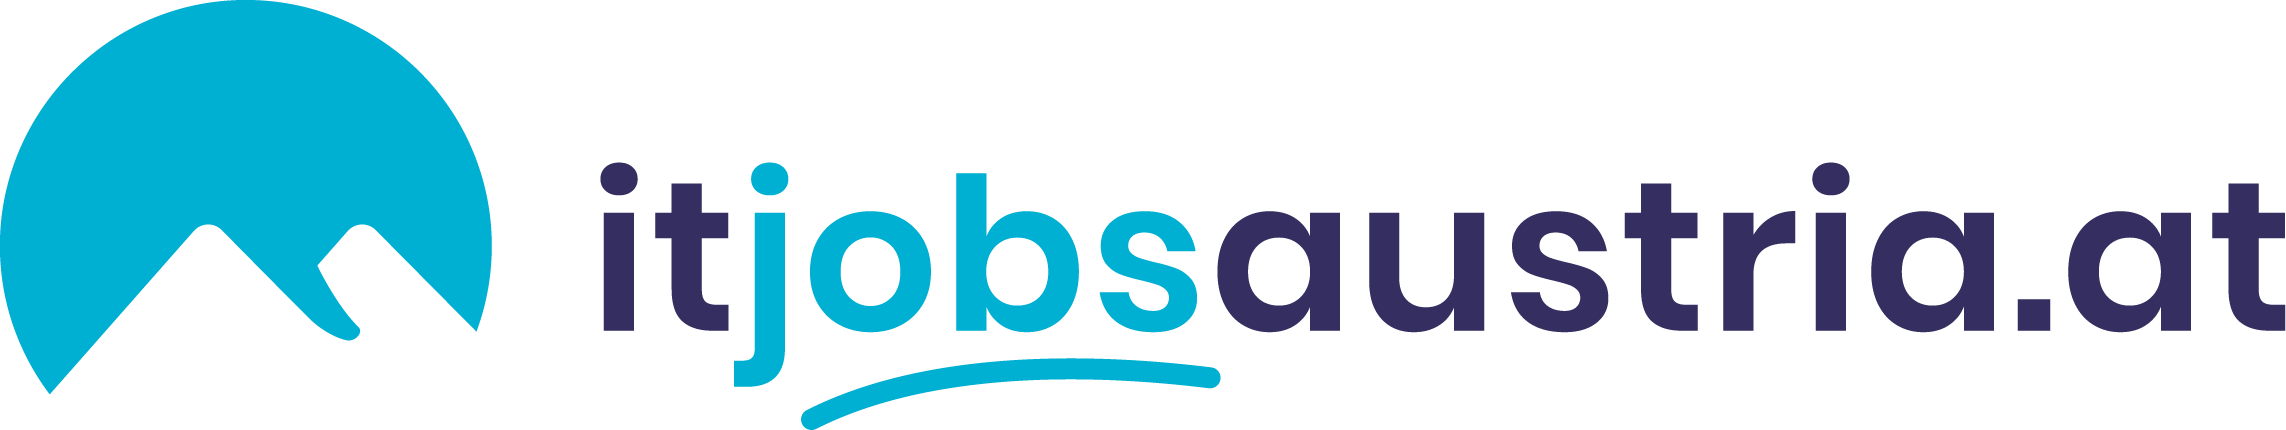 ITjobsaustria.at